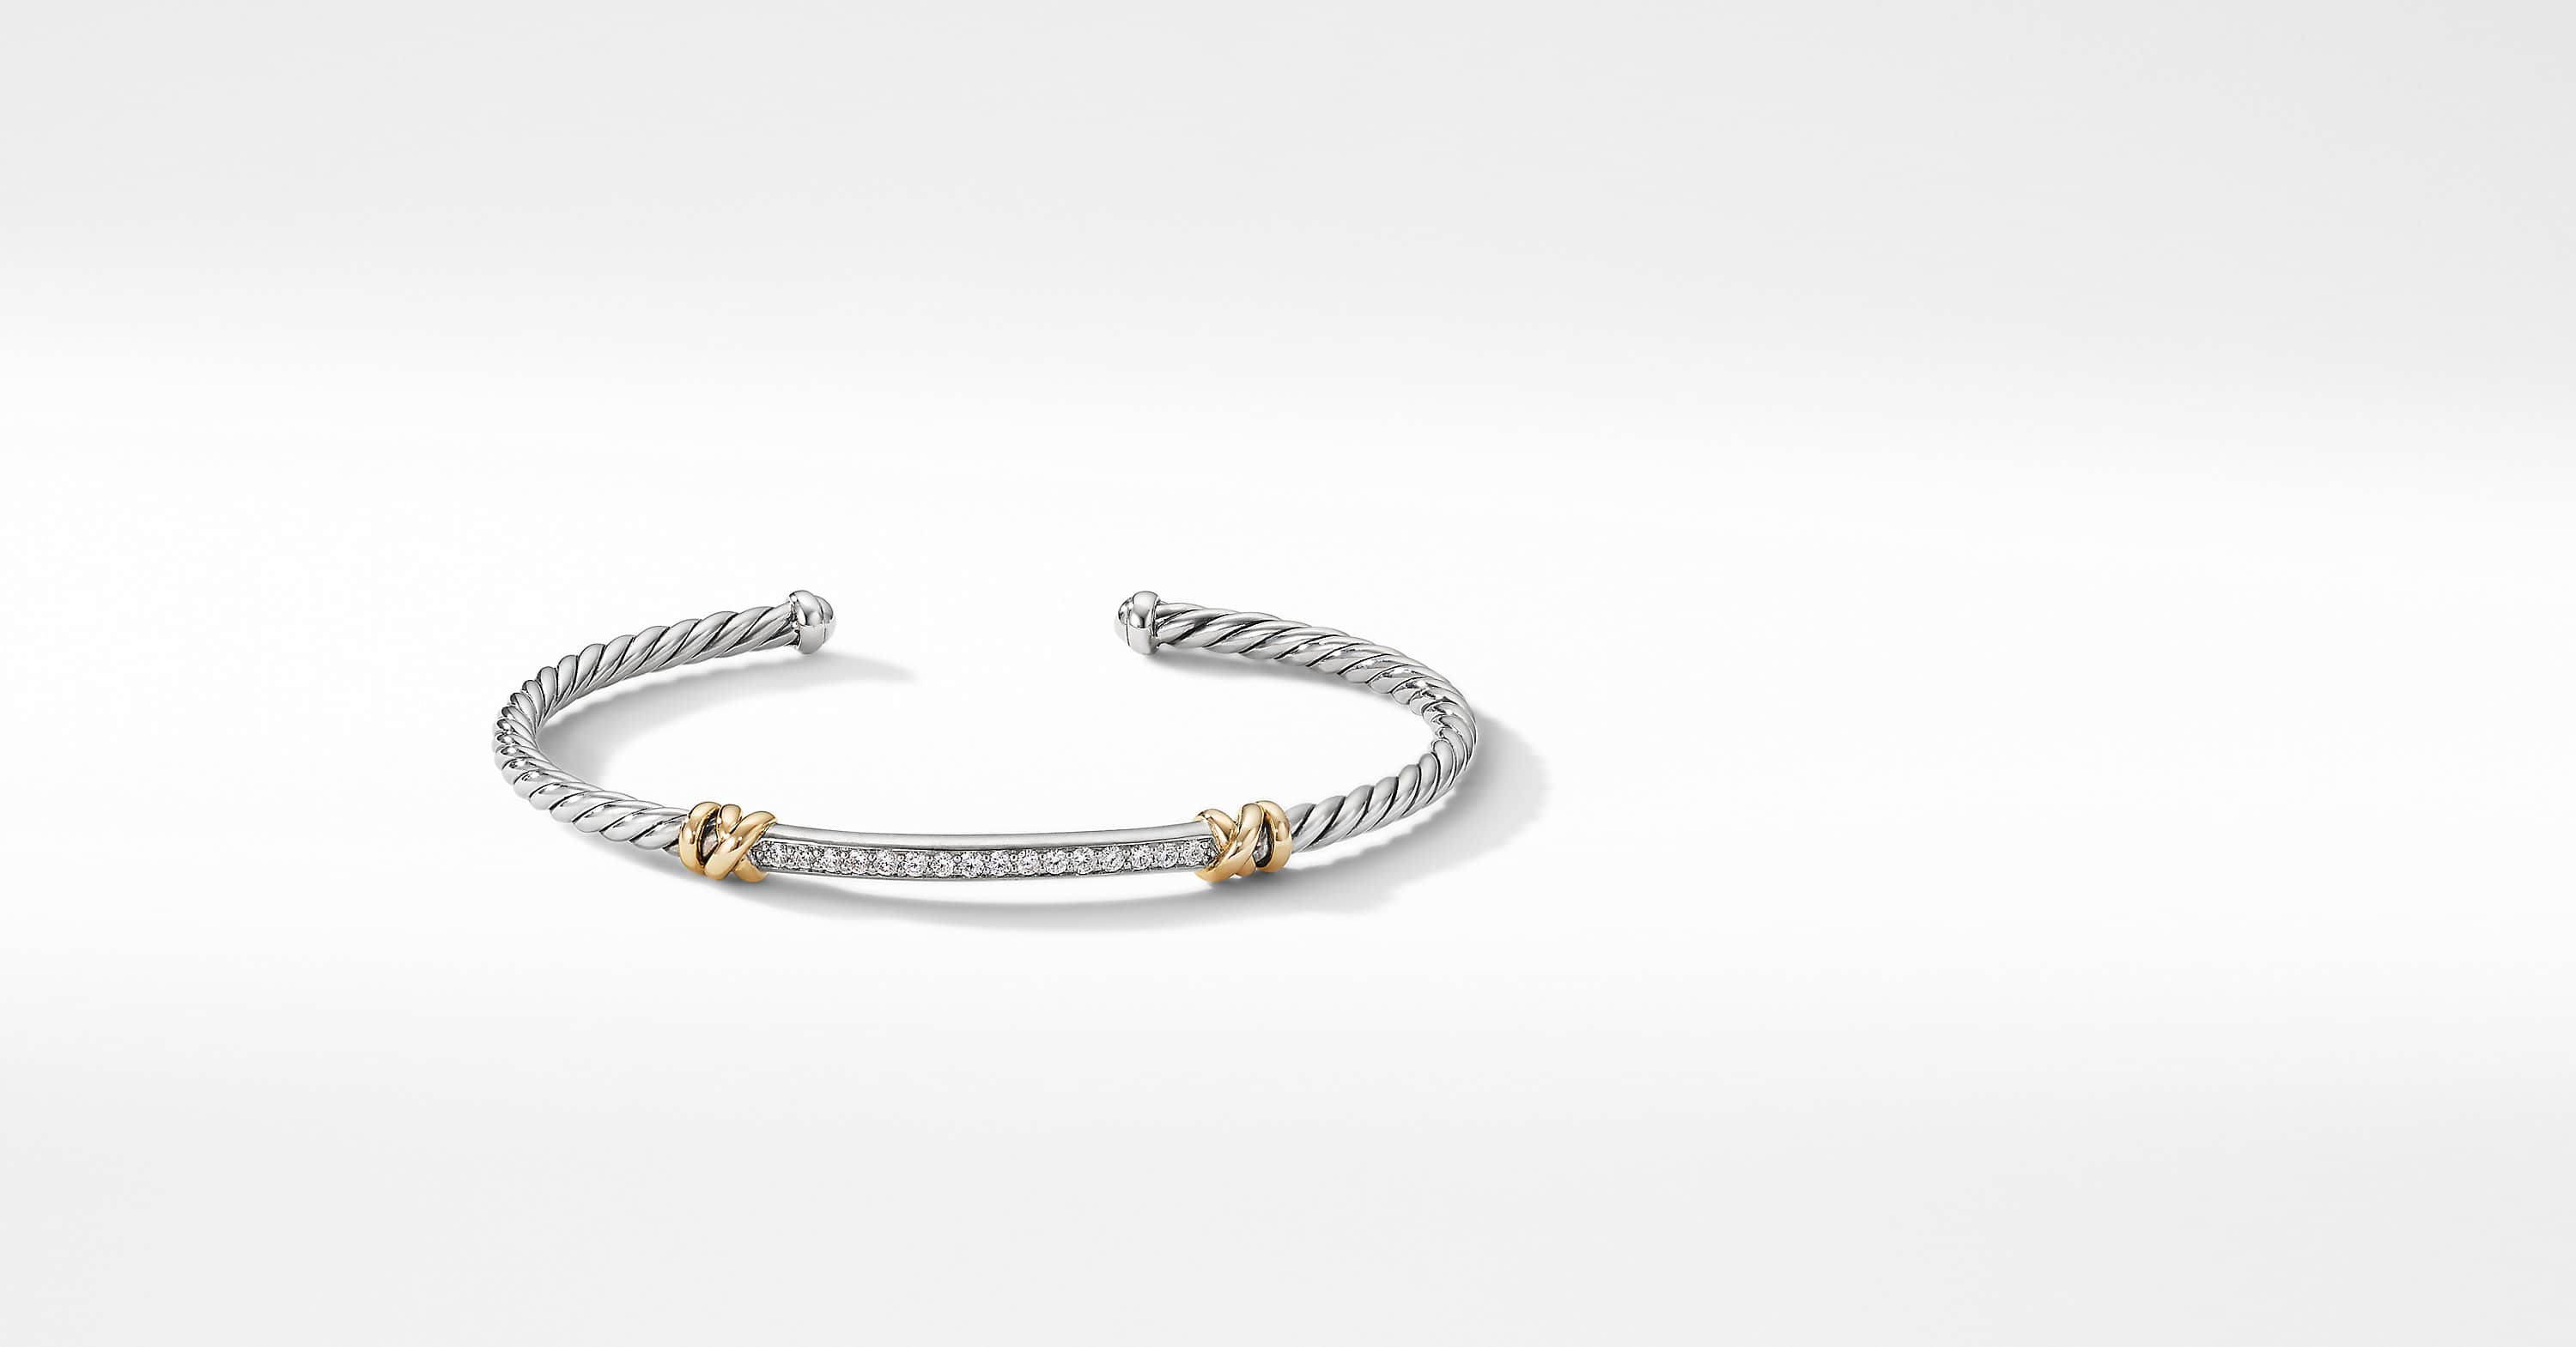 Petite Helena Two Station Wrap Bracelet with 18K Yellow Gold with Diamonds